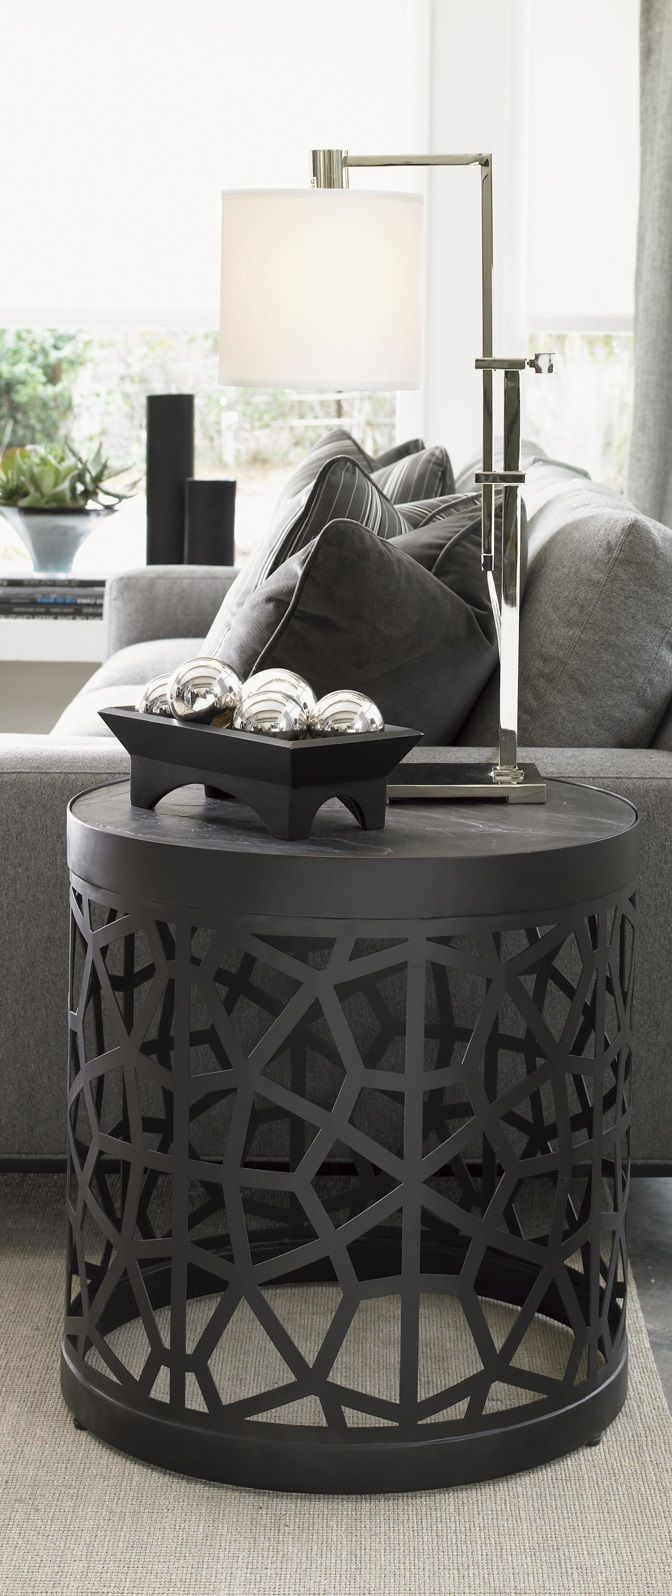 unique side tables living room. This unique lamp and table go together so well  Deloufleur Decor Designs Best 25 Living room side tables ideas on Pinterest